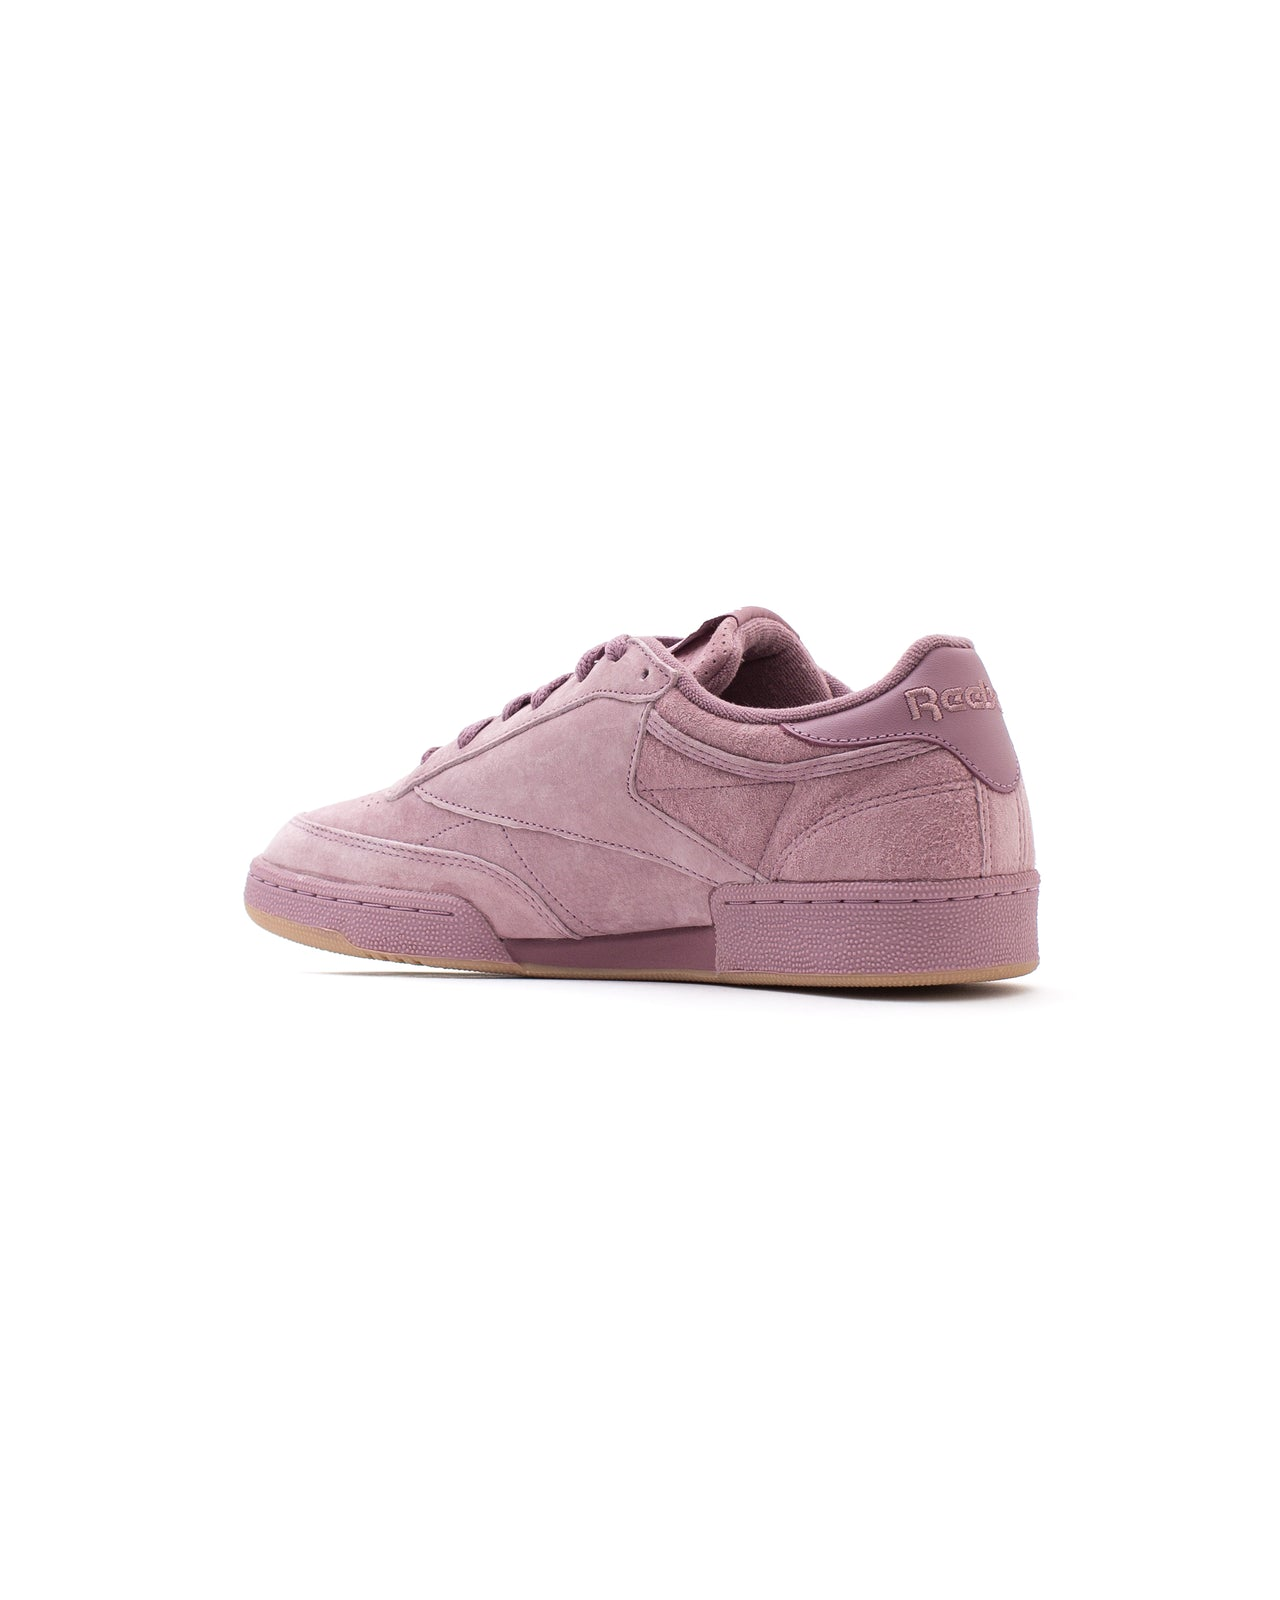 Club C 85 SG - Color: Smokey Orchid | Purple